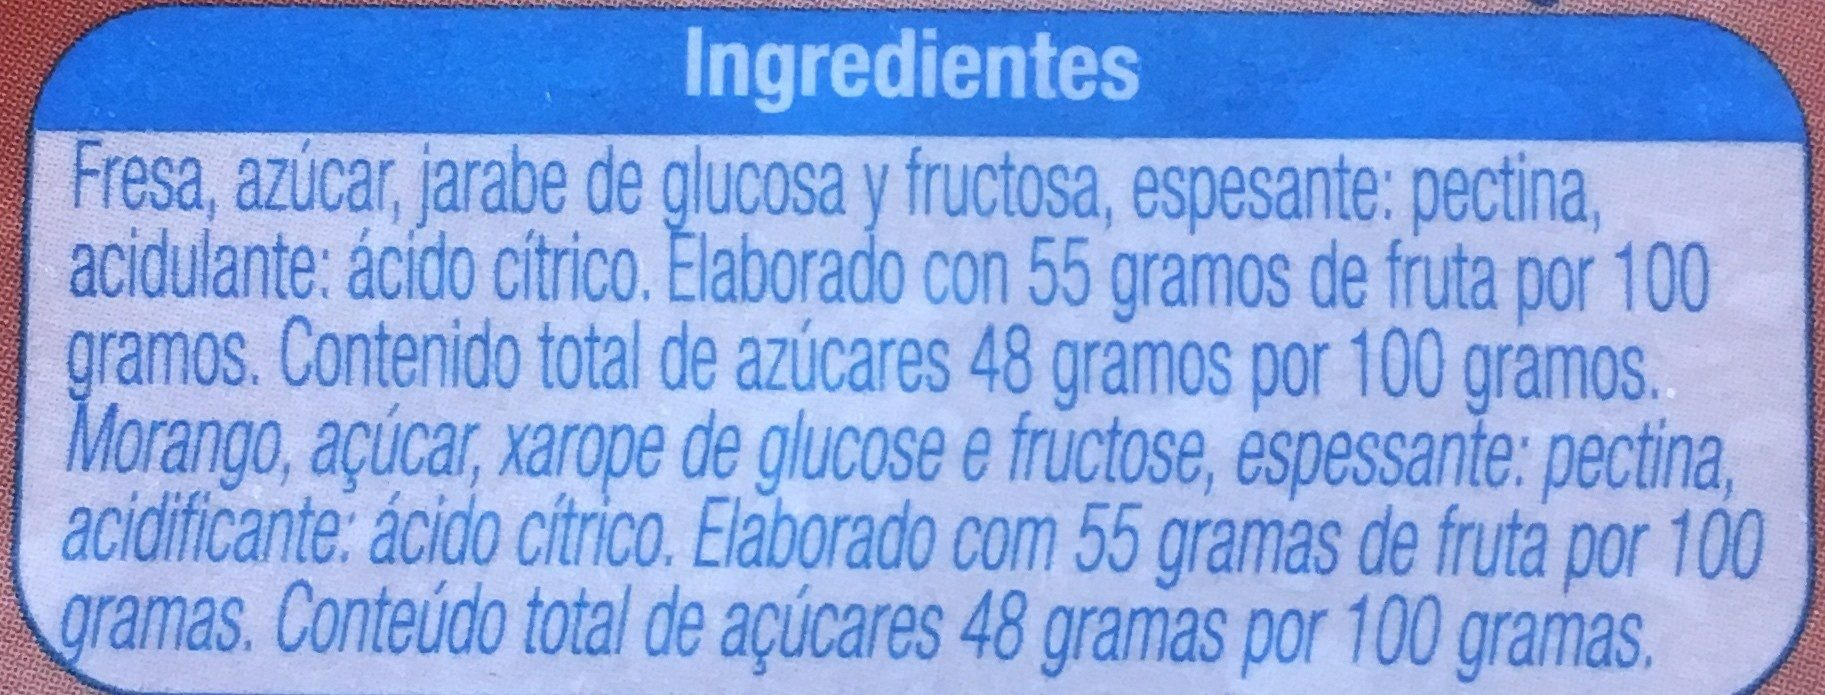 Mermelada de fresa - Ingredients